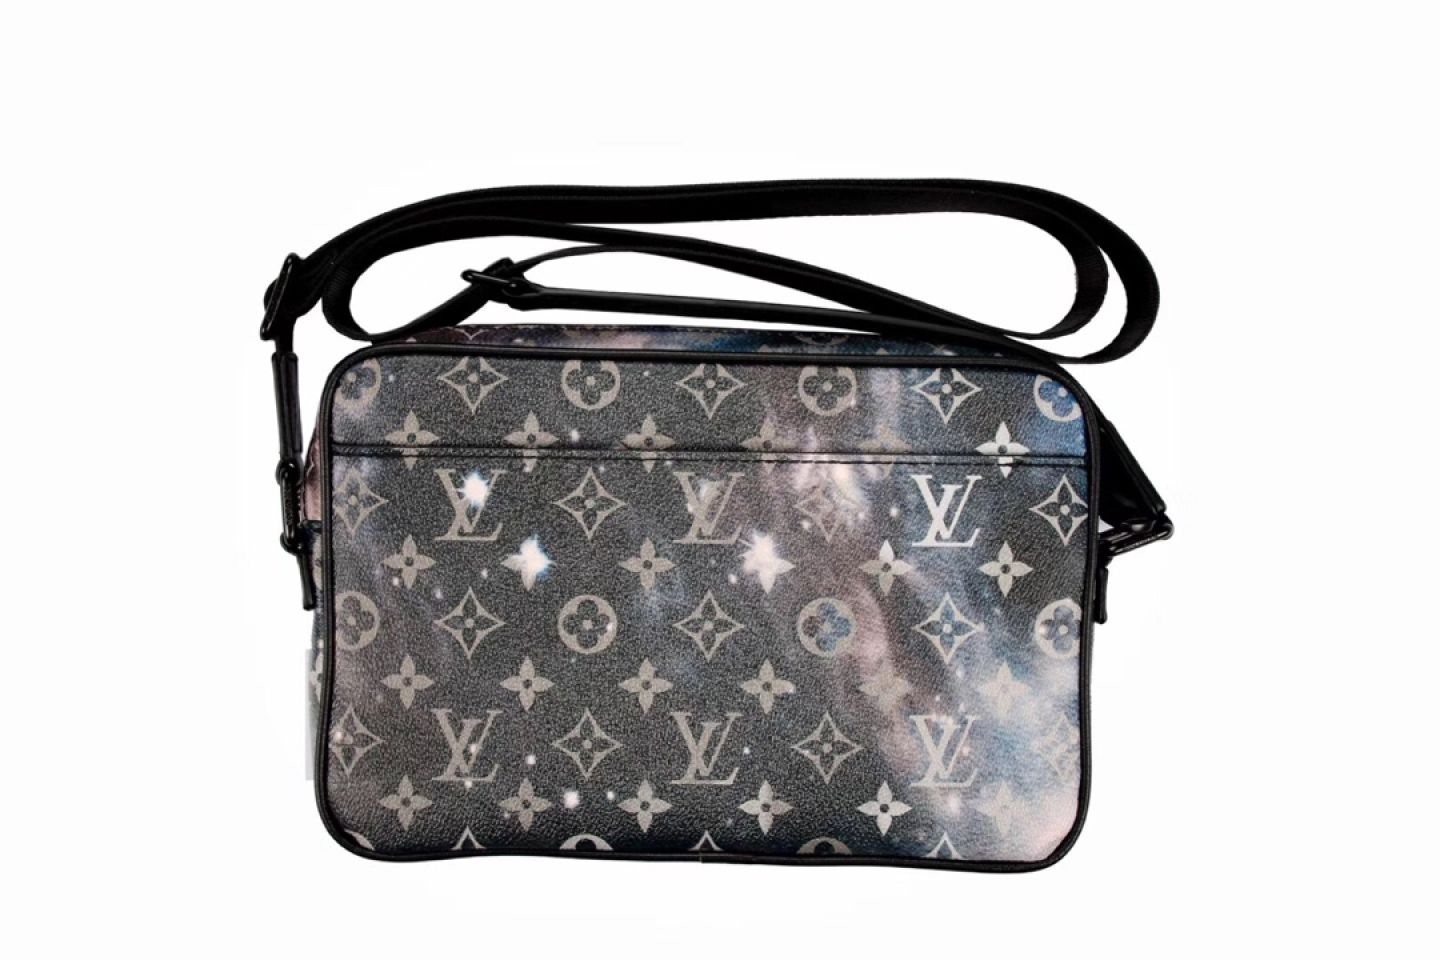 Goods Lo*is Vu*tton Alpha Messenger Monogram Galaxy Black Multicolor 5 lois_vutton_alpha_messenger_monogram_galaxy_black_multicolor__5